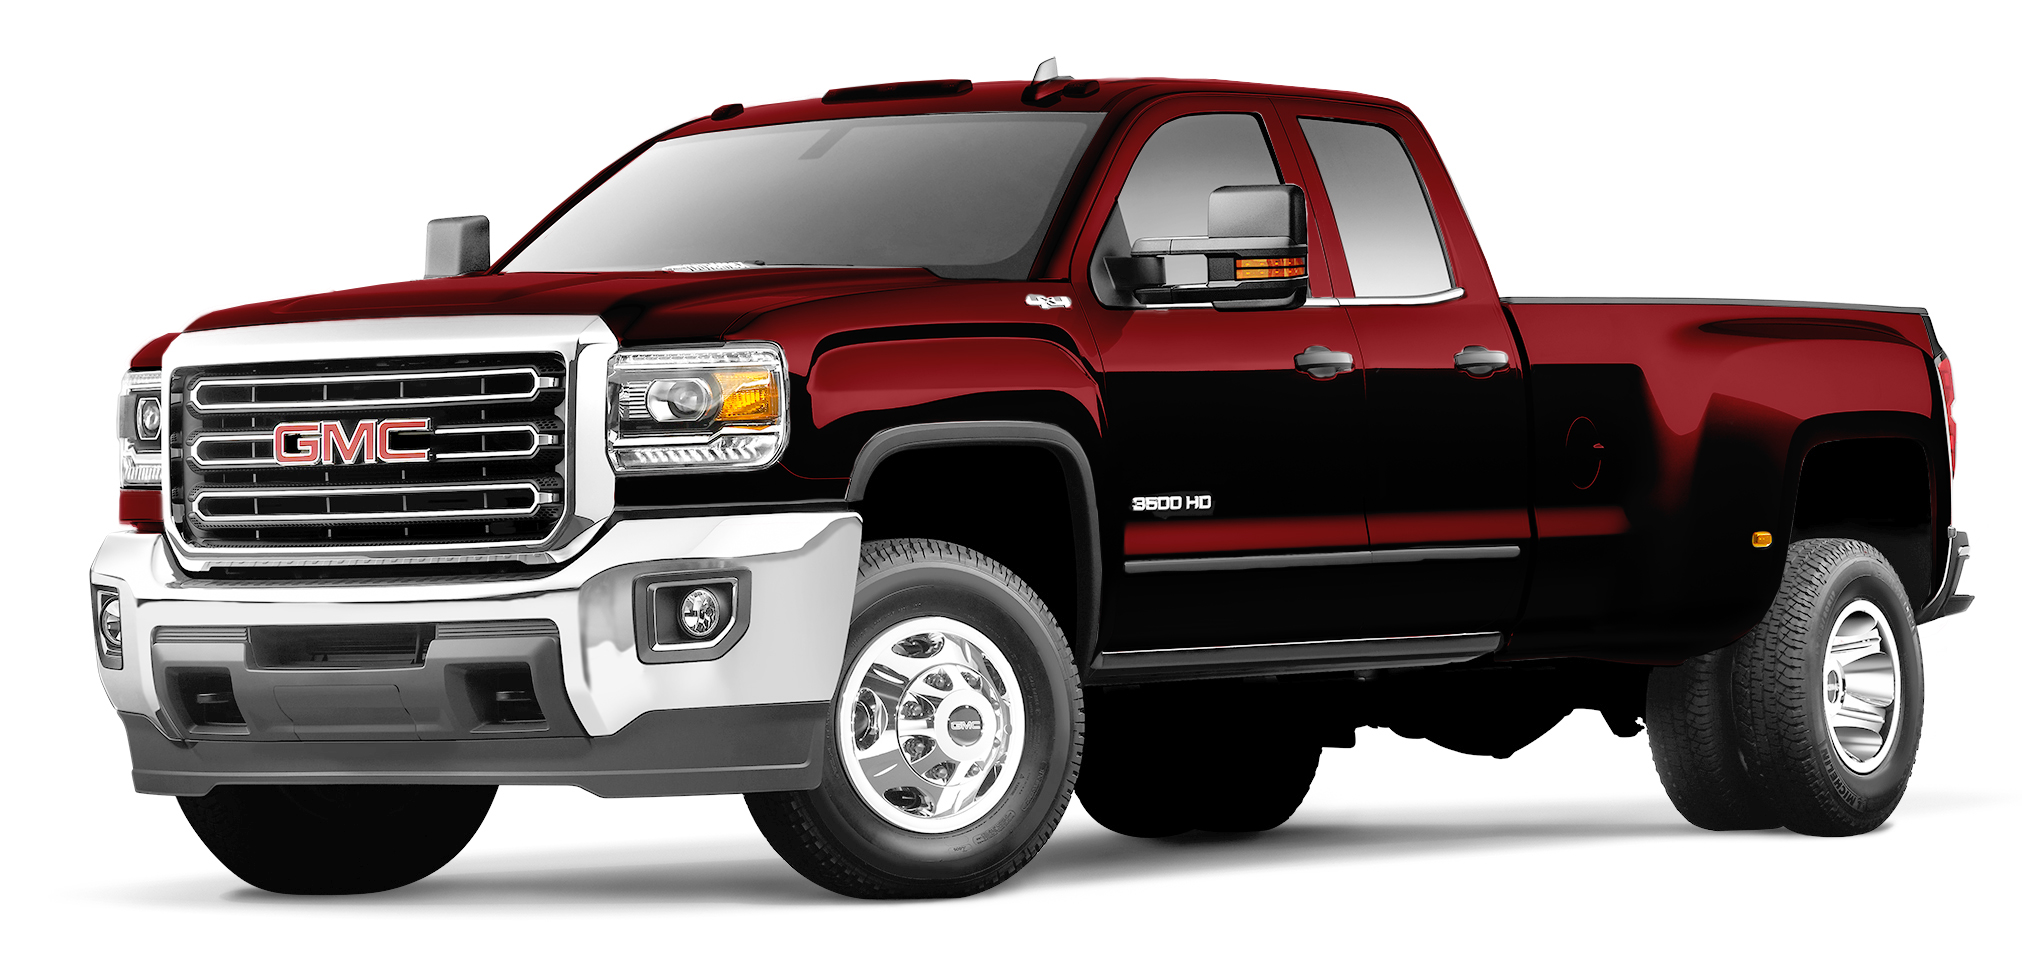 GMC Sierra 3500 HD Crimson